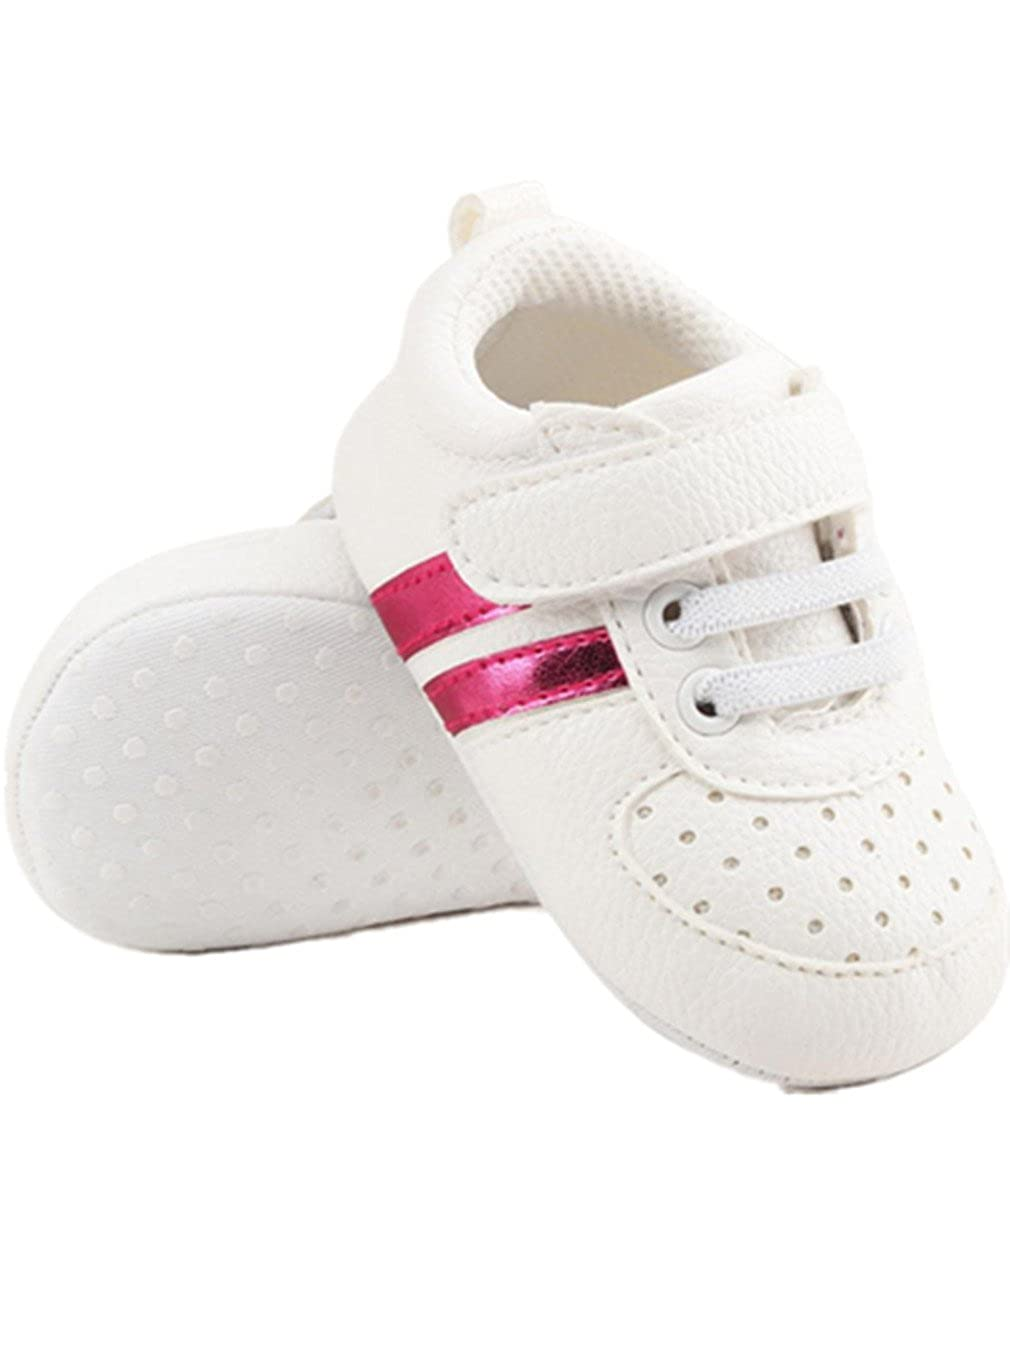 Sunward Baby Boys Girls Shoes Leather Toddler Sneakers Anti-Slip Soft Sole Infant First Walkers